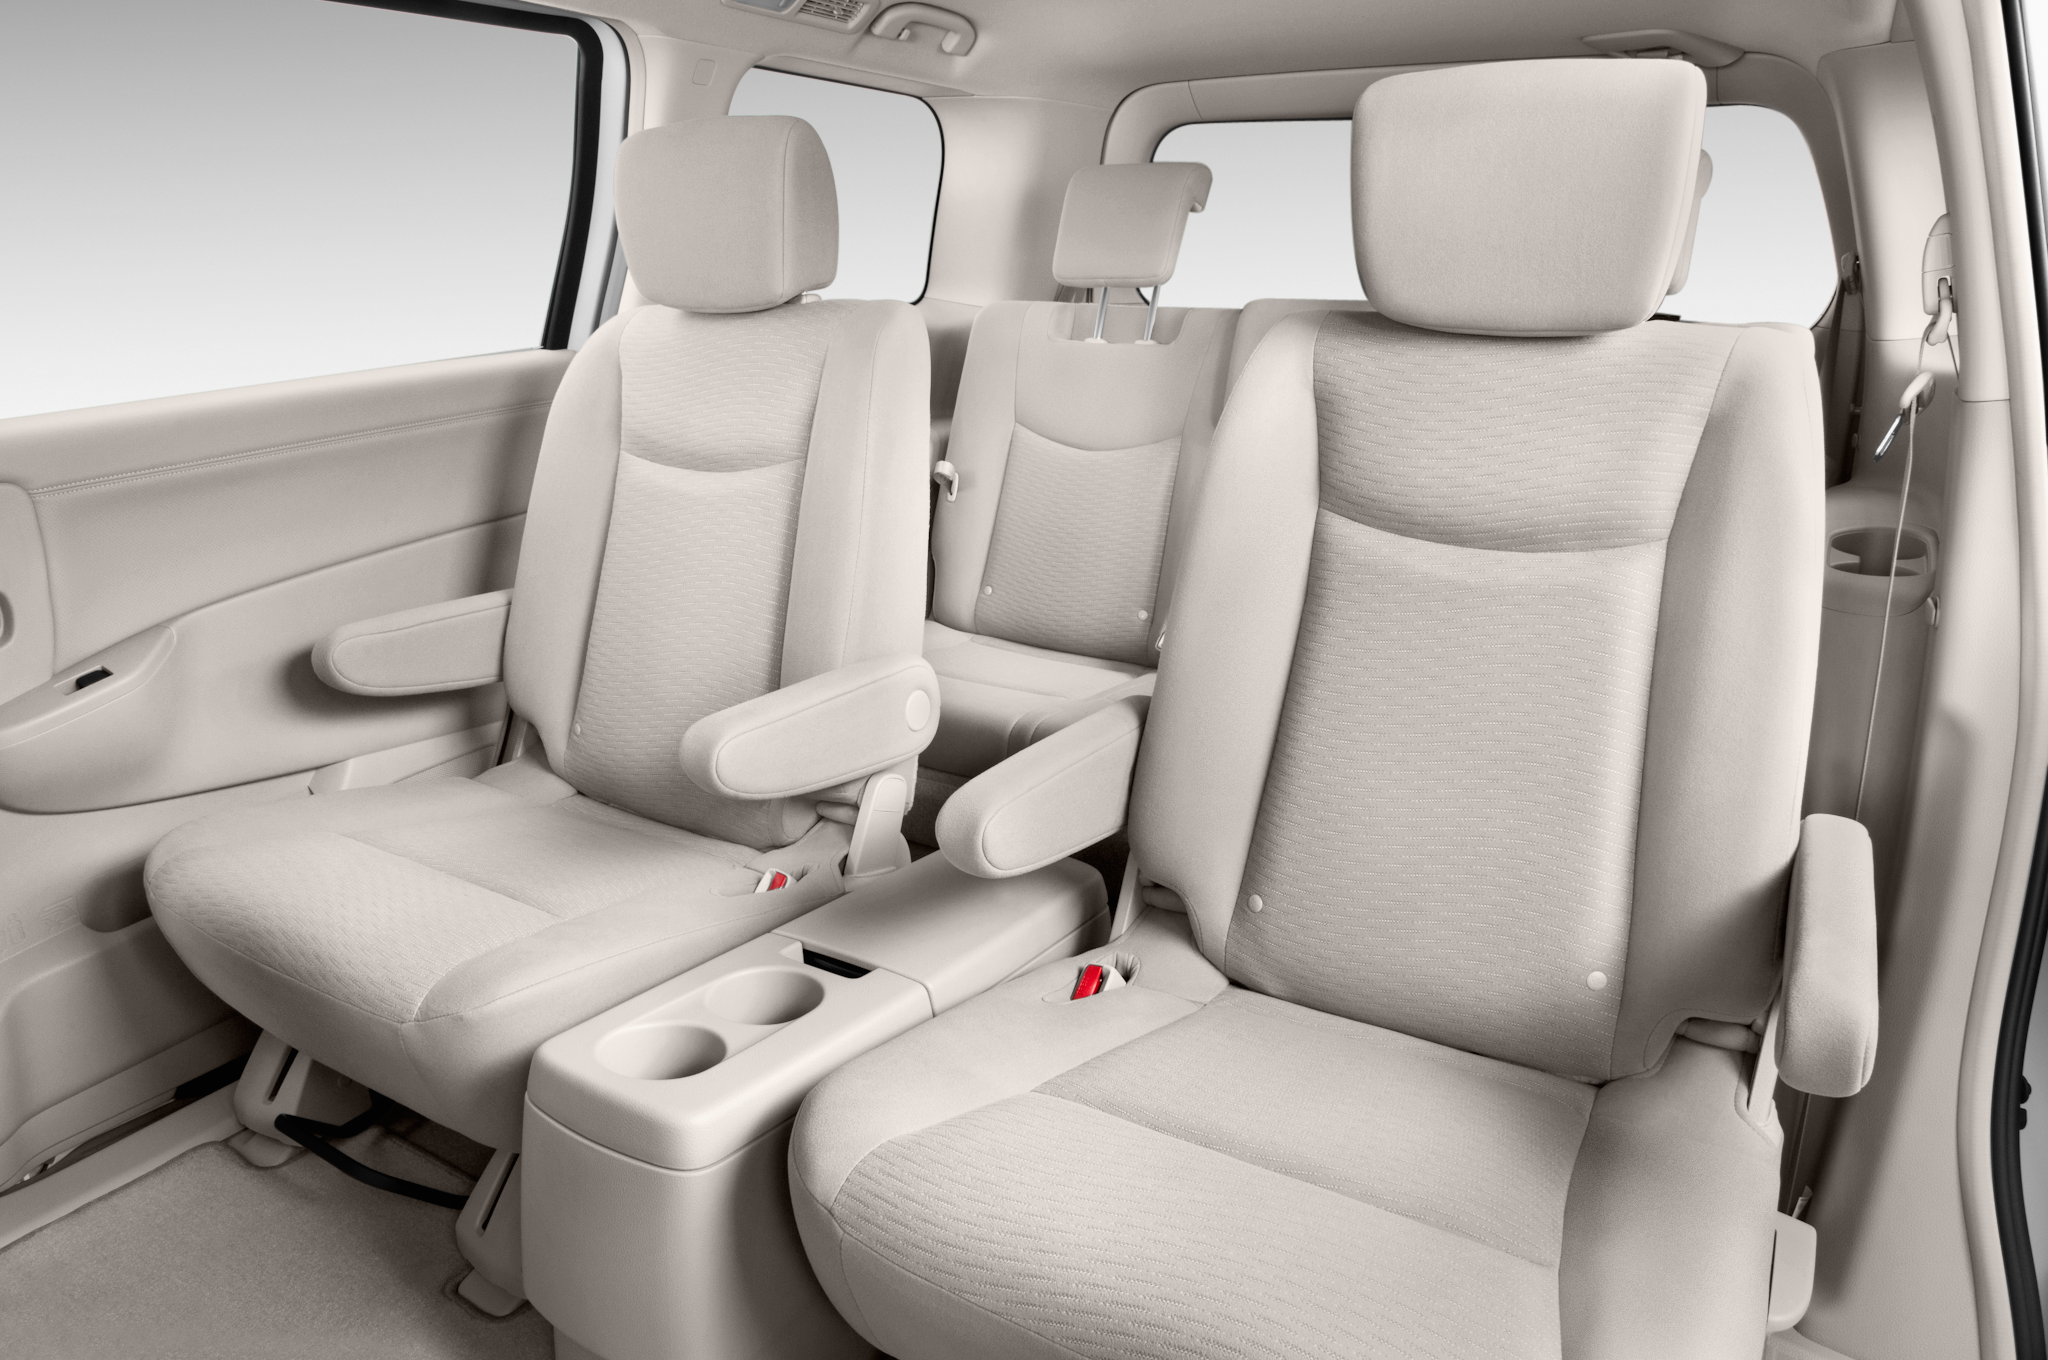 2015 Nissan Quest Starts at $27,415